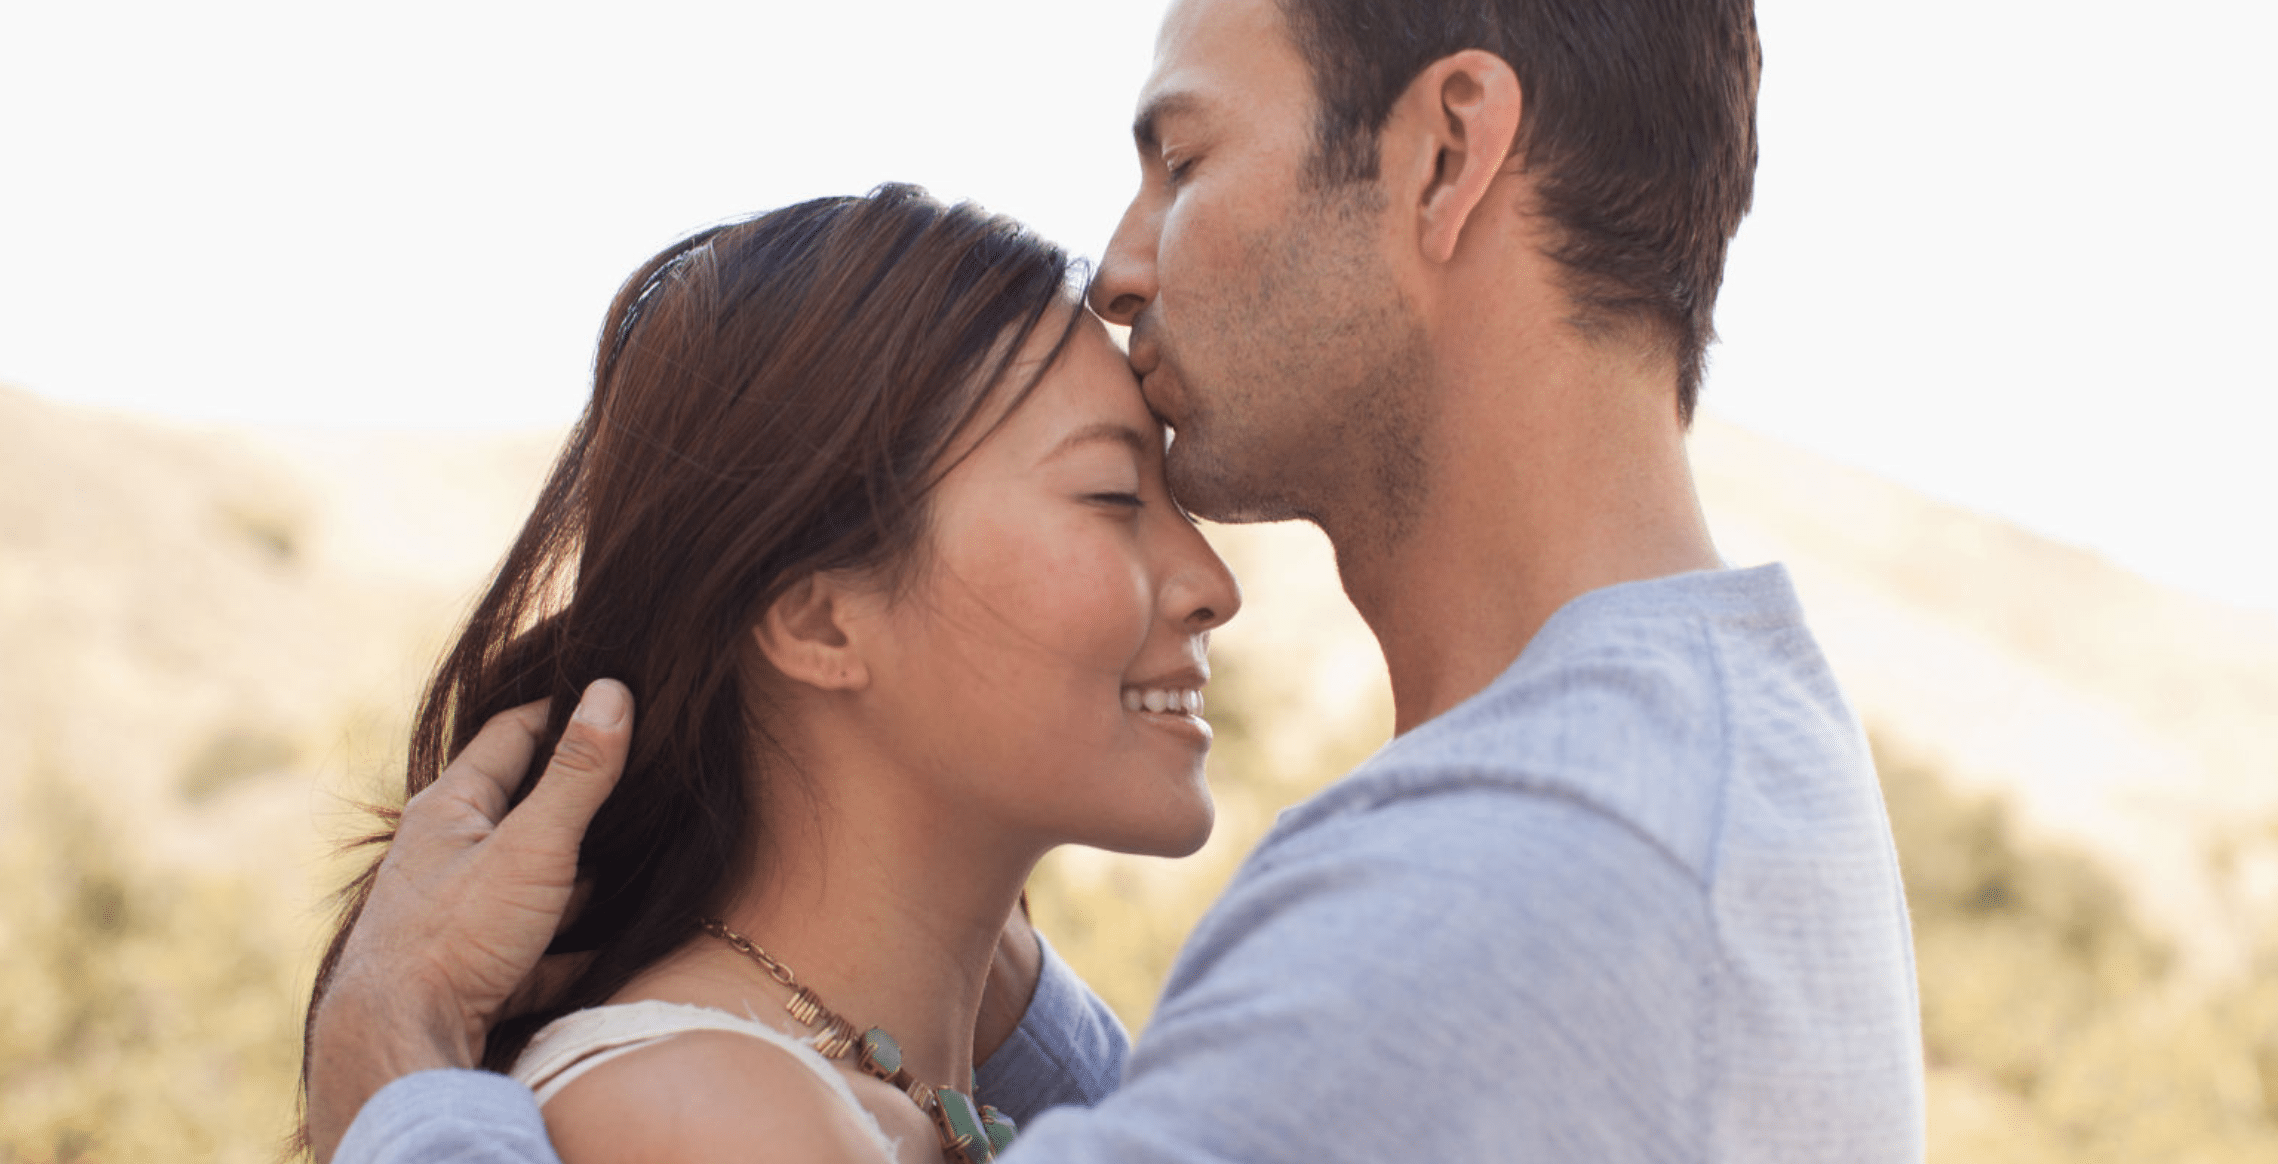 redbook dating my best guy friend is dating someone